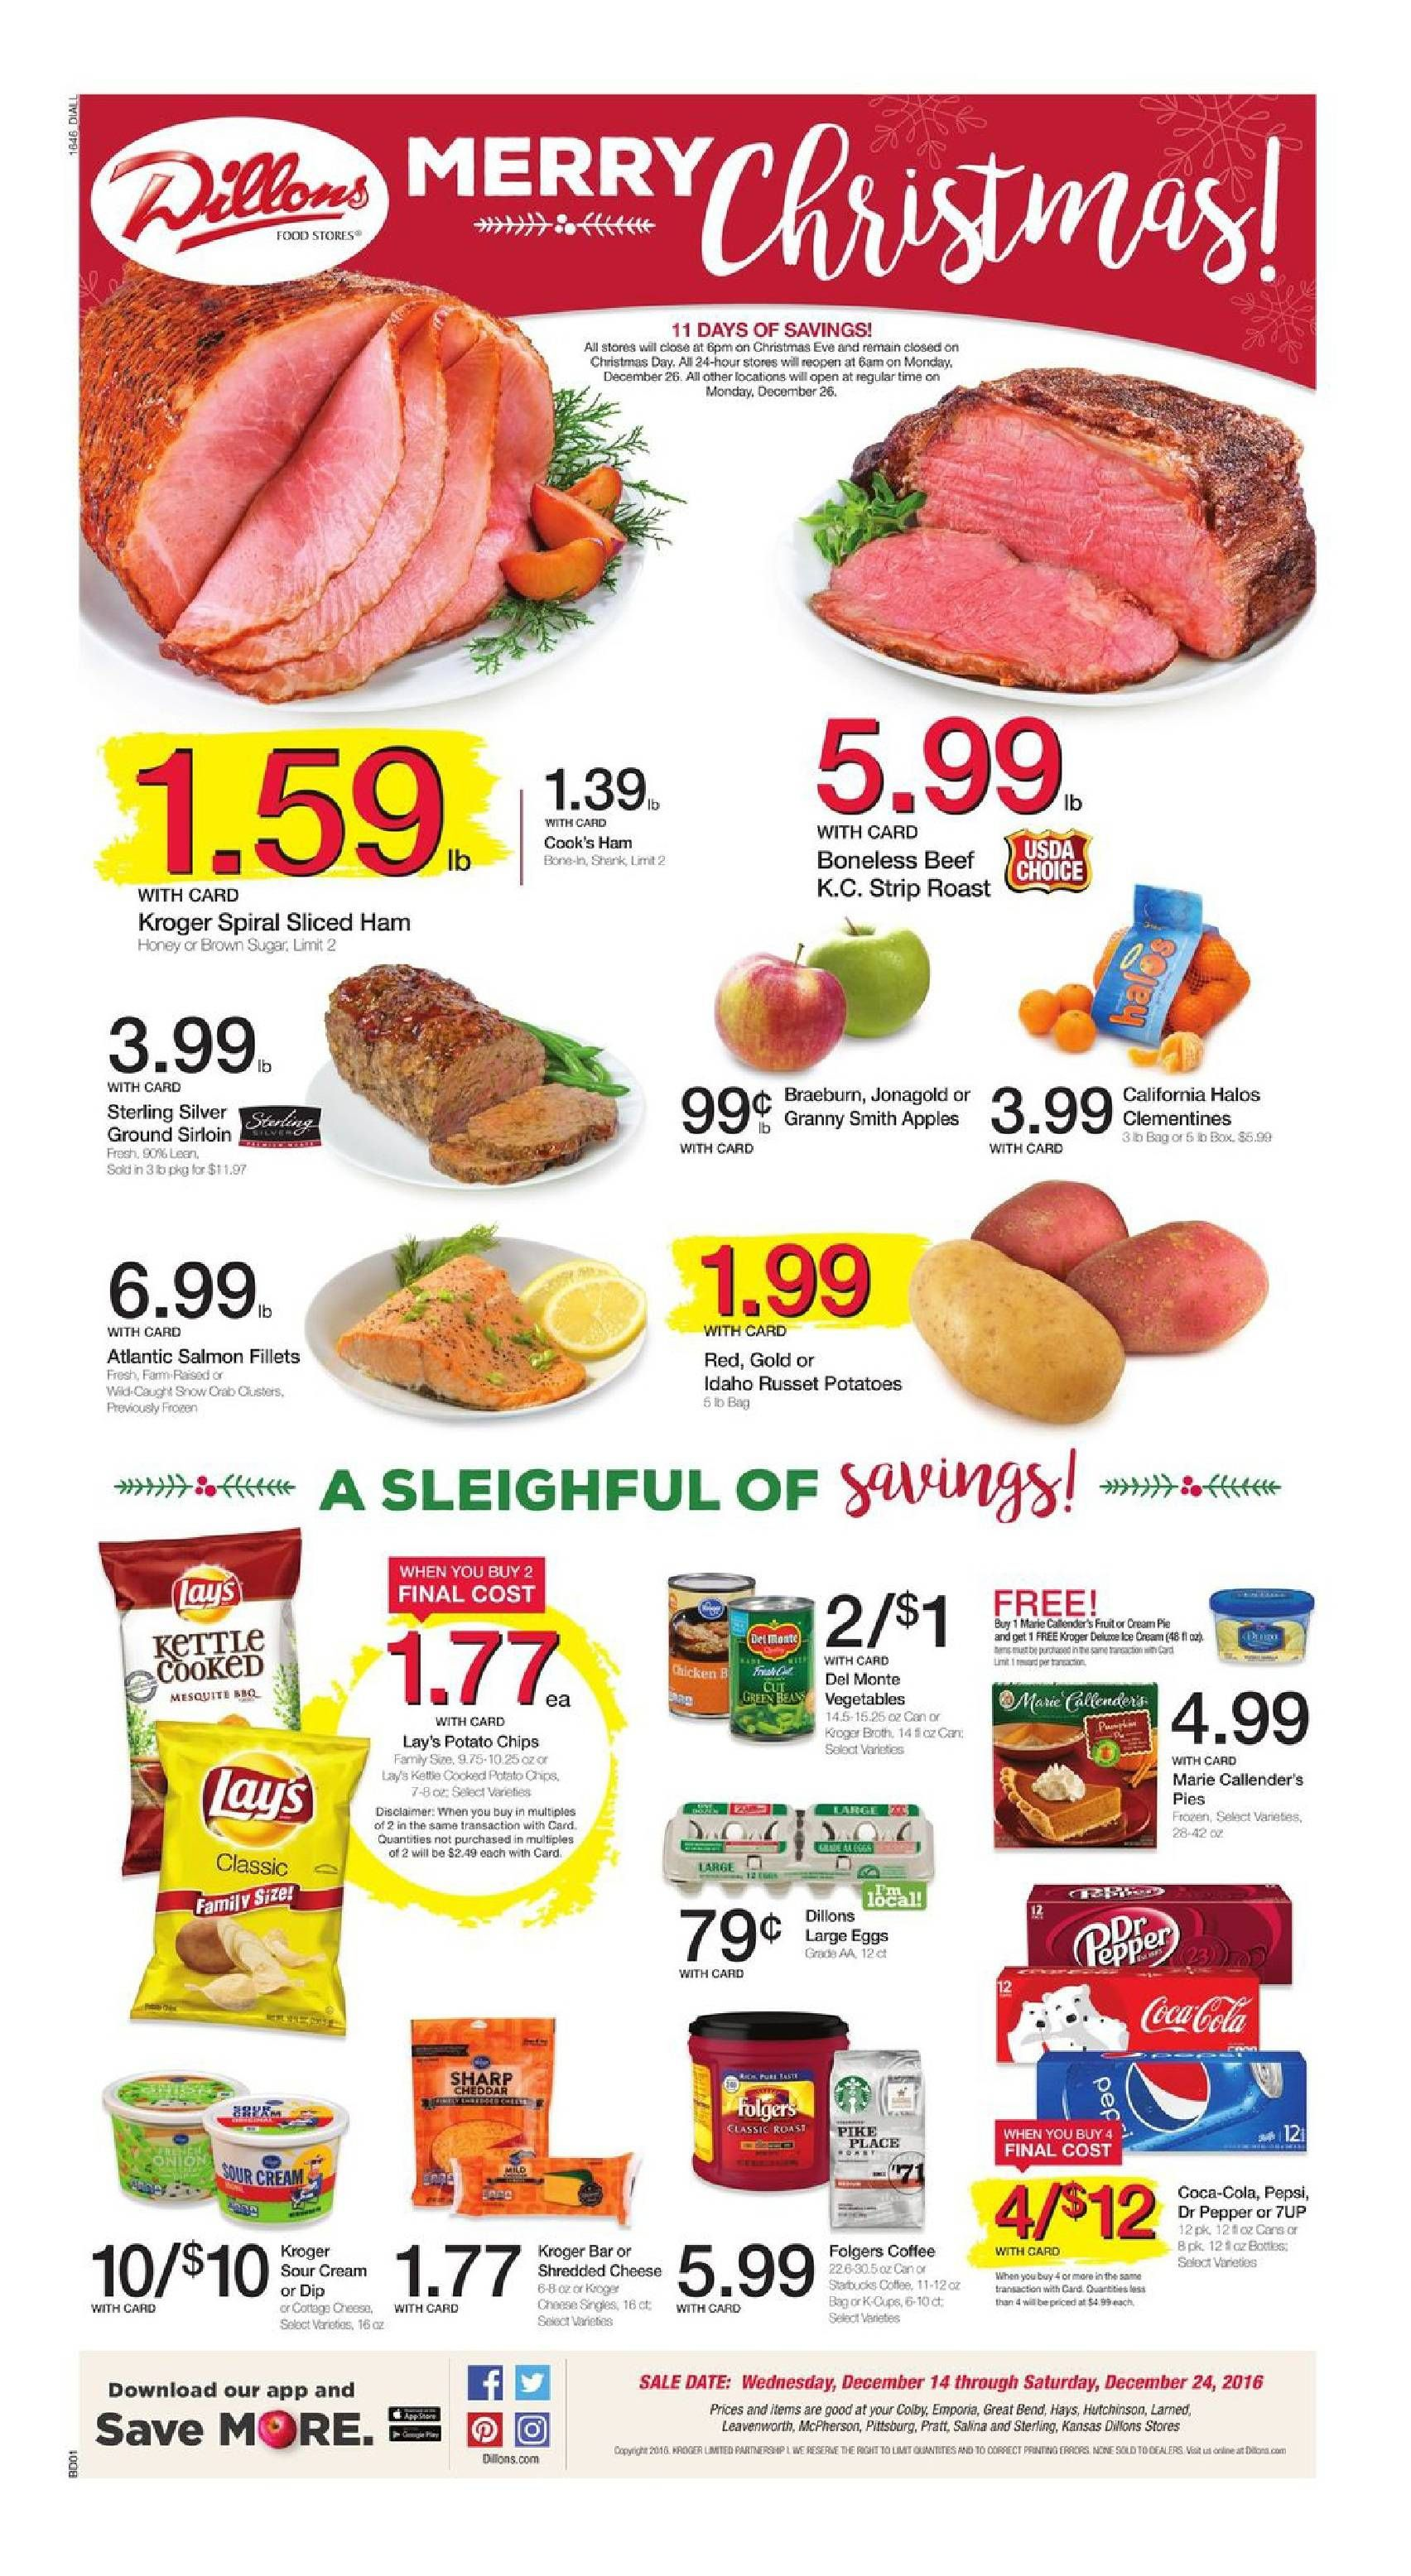 Dillons Weekly Ad December 14 - 24, 2016 - http://www.olcatalog.com ...